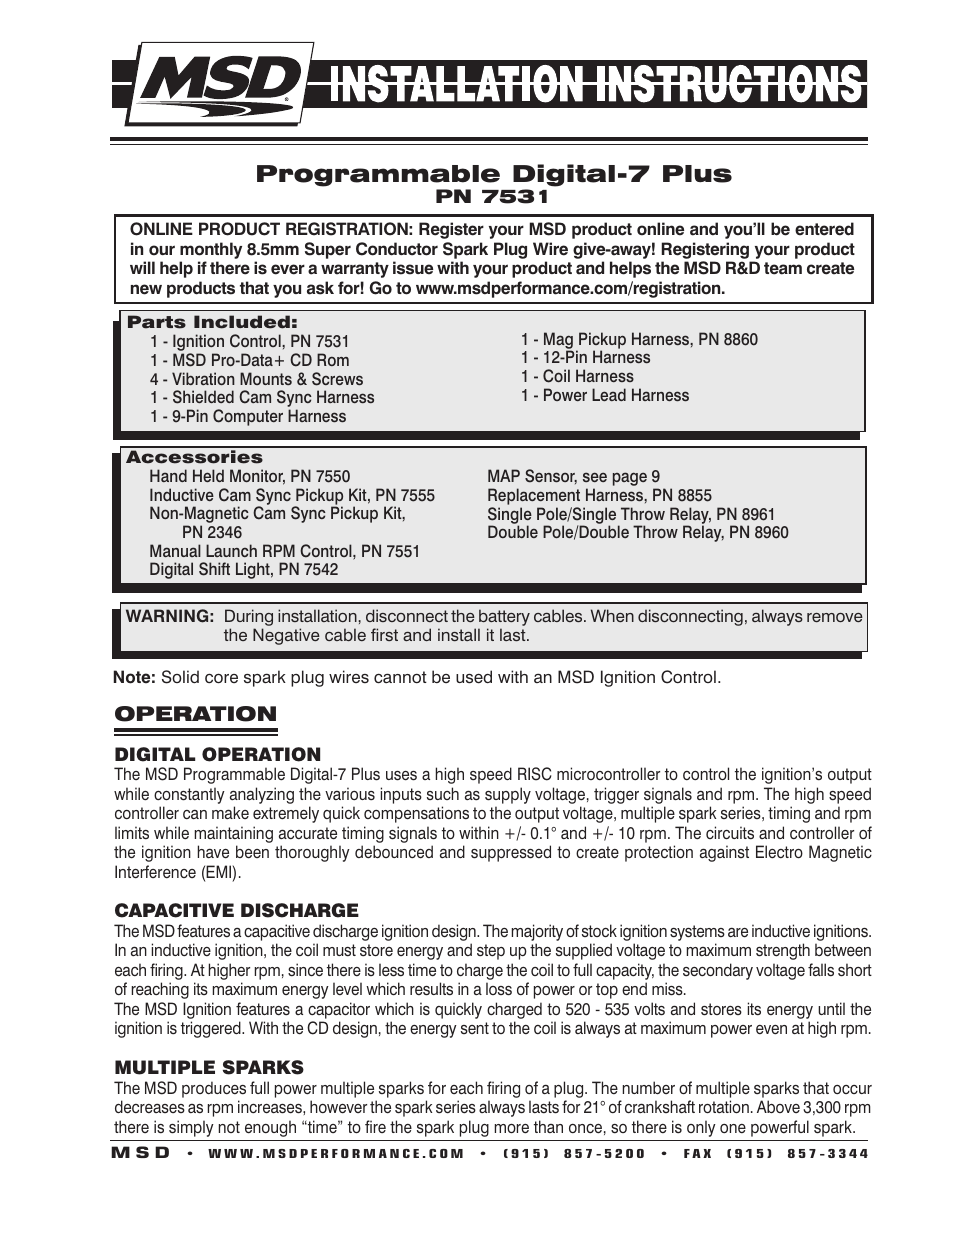 msd 7531 programmable digital 7 plus installation page1 msd 7531 programmable digital 7 plus installation user manual 20 msd 8860 wiring harness diagram at n-0.co